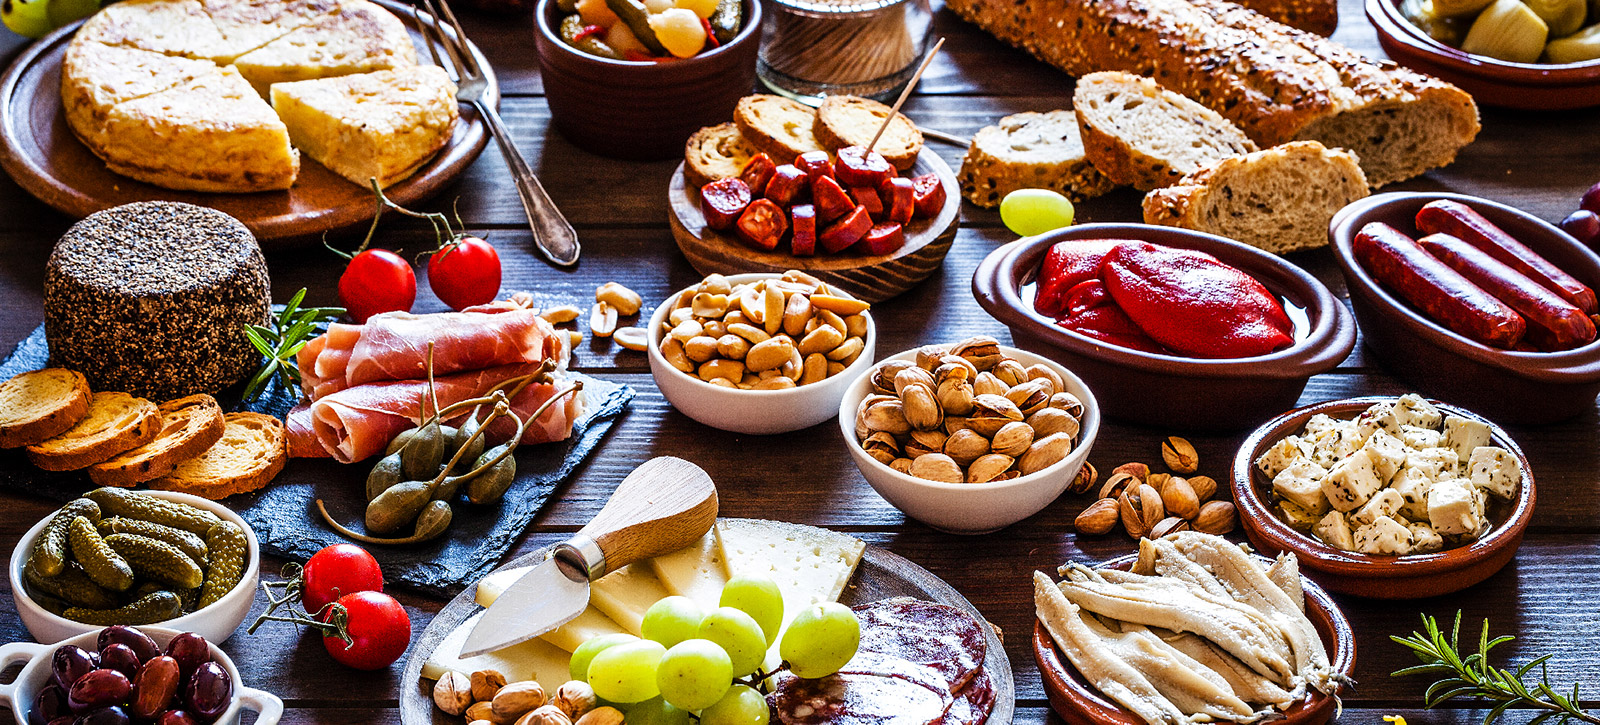 Let's Talk About the Mediterranean Diet